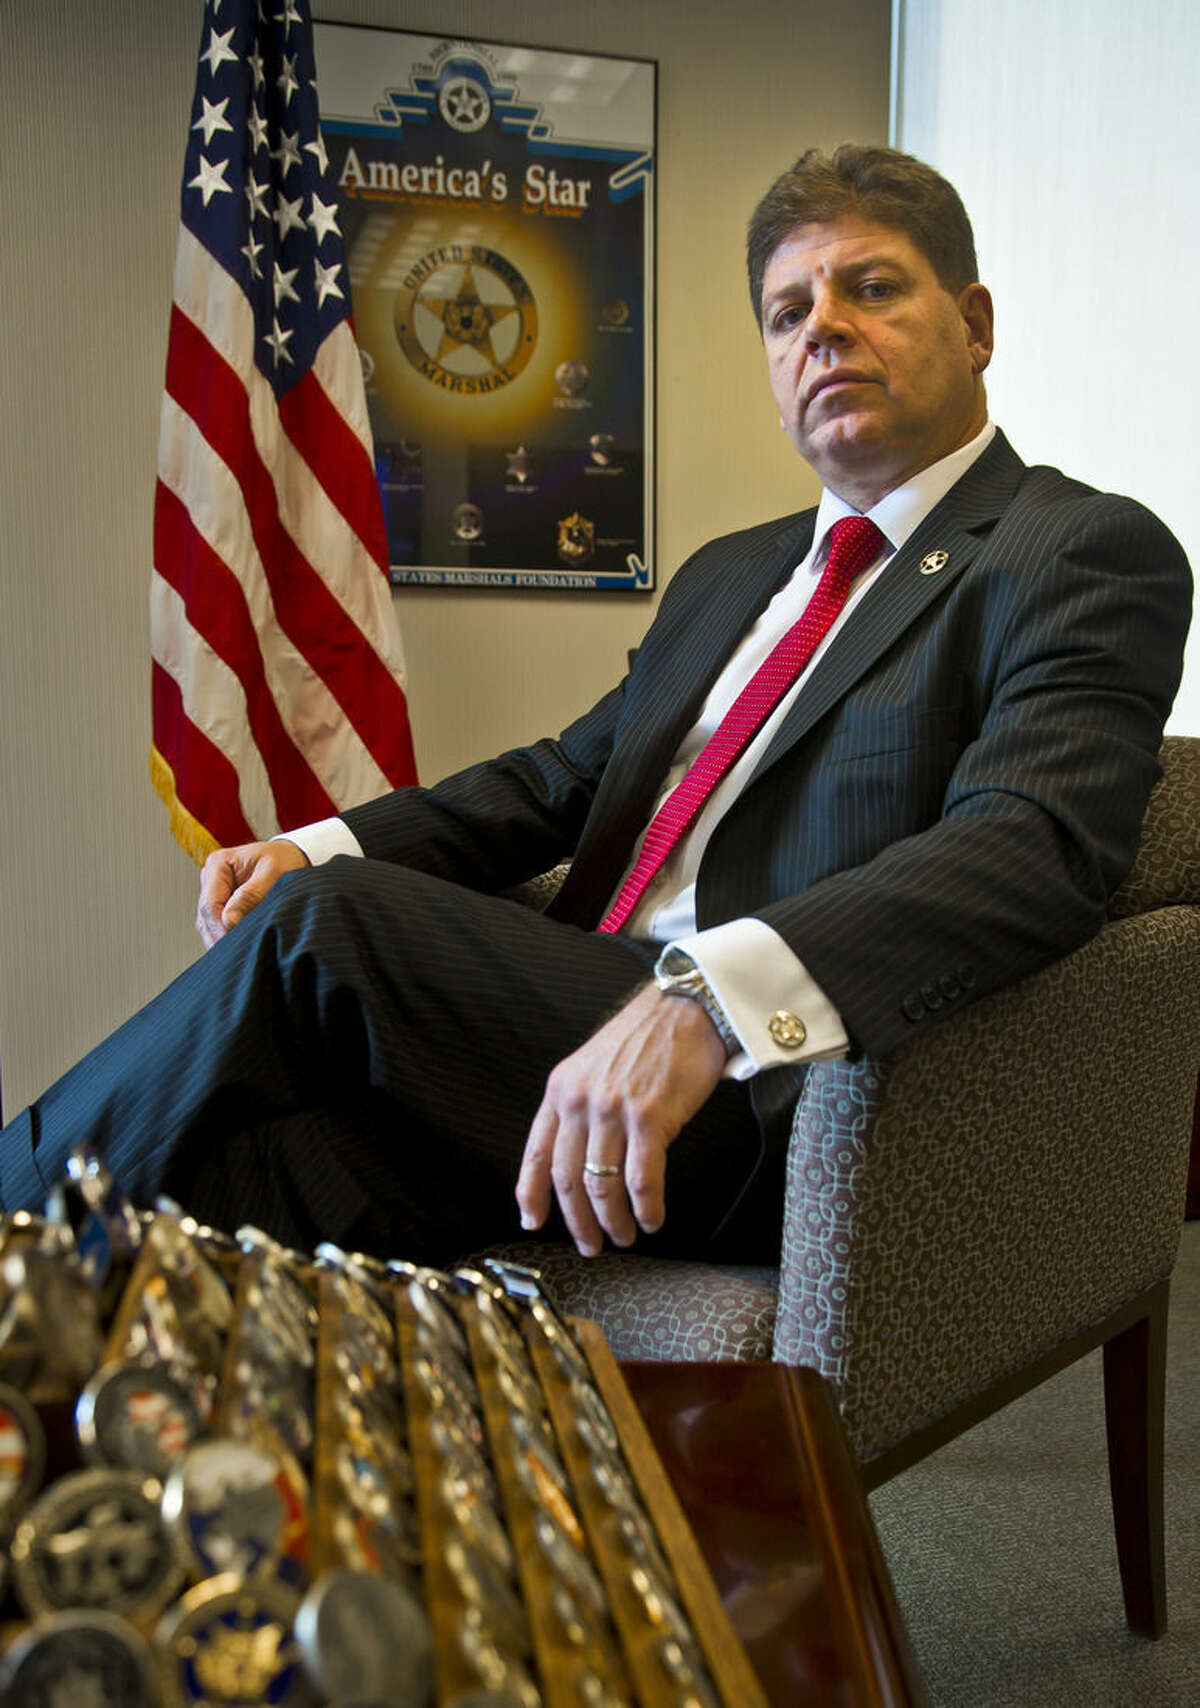 """U.S. Marshall Director Michael Greco pose in his office next to his collection of """"Challenge Coins"""" in the foreground, representing military and law enforcement institutions, Thursday, Oct. 8, 2015, in New York. (AP Photo/Bebeto Matthews)"""